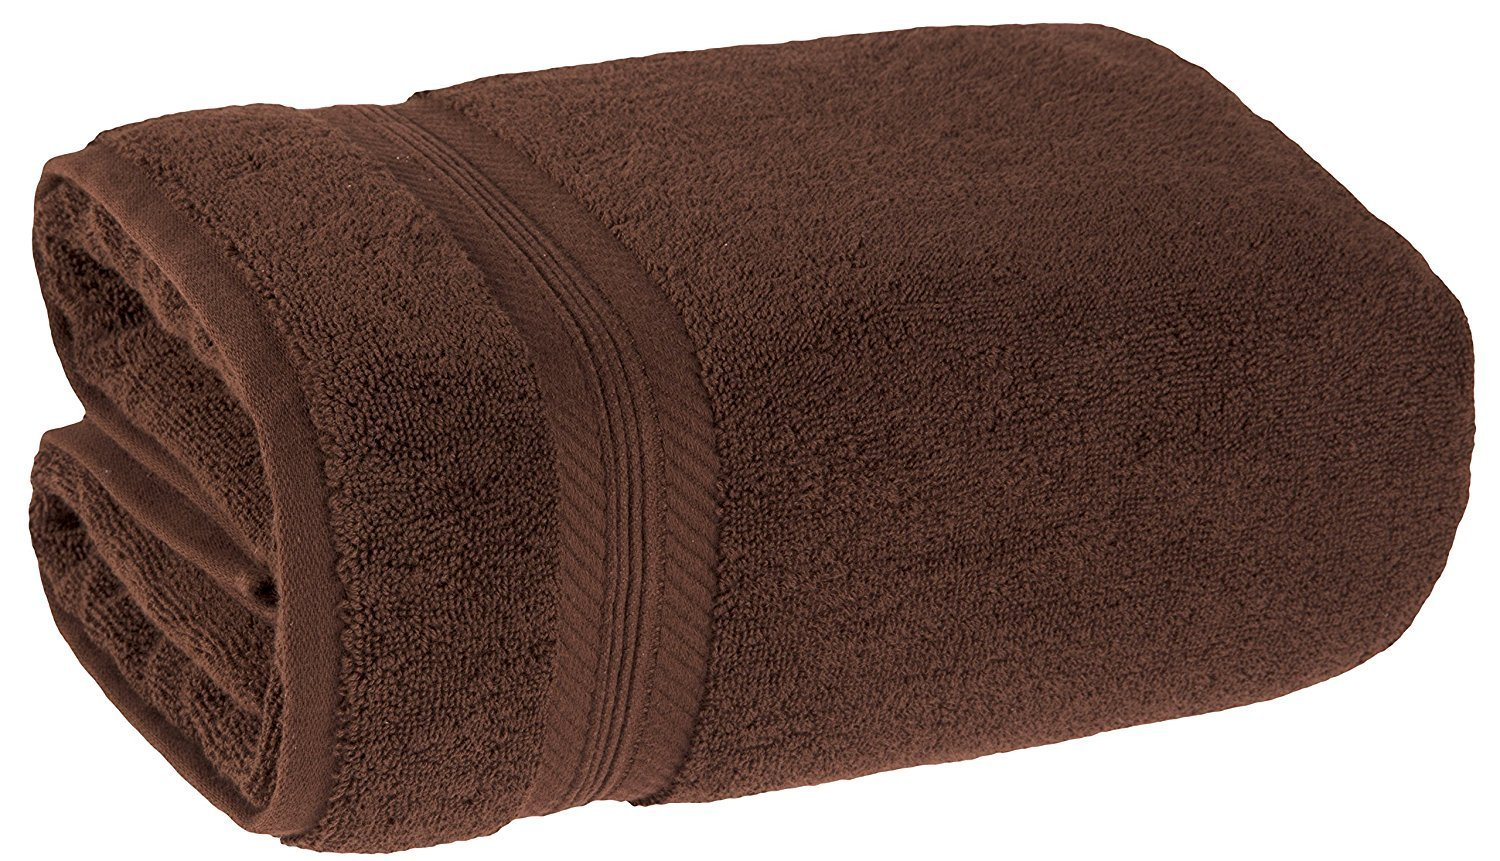 Machine Washable Bath Sheet Large, 100% Ring Spun Genuine Cotton 650 GSM, Maximum Absorbency & Softness, Hotel & Spa Quality, Perfect for Decorative Bathrooms, 35x70 Inches by ProTech, Dark Brown